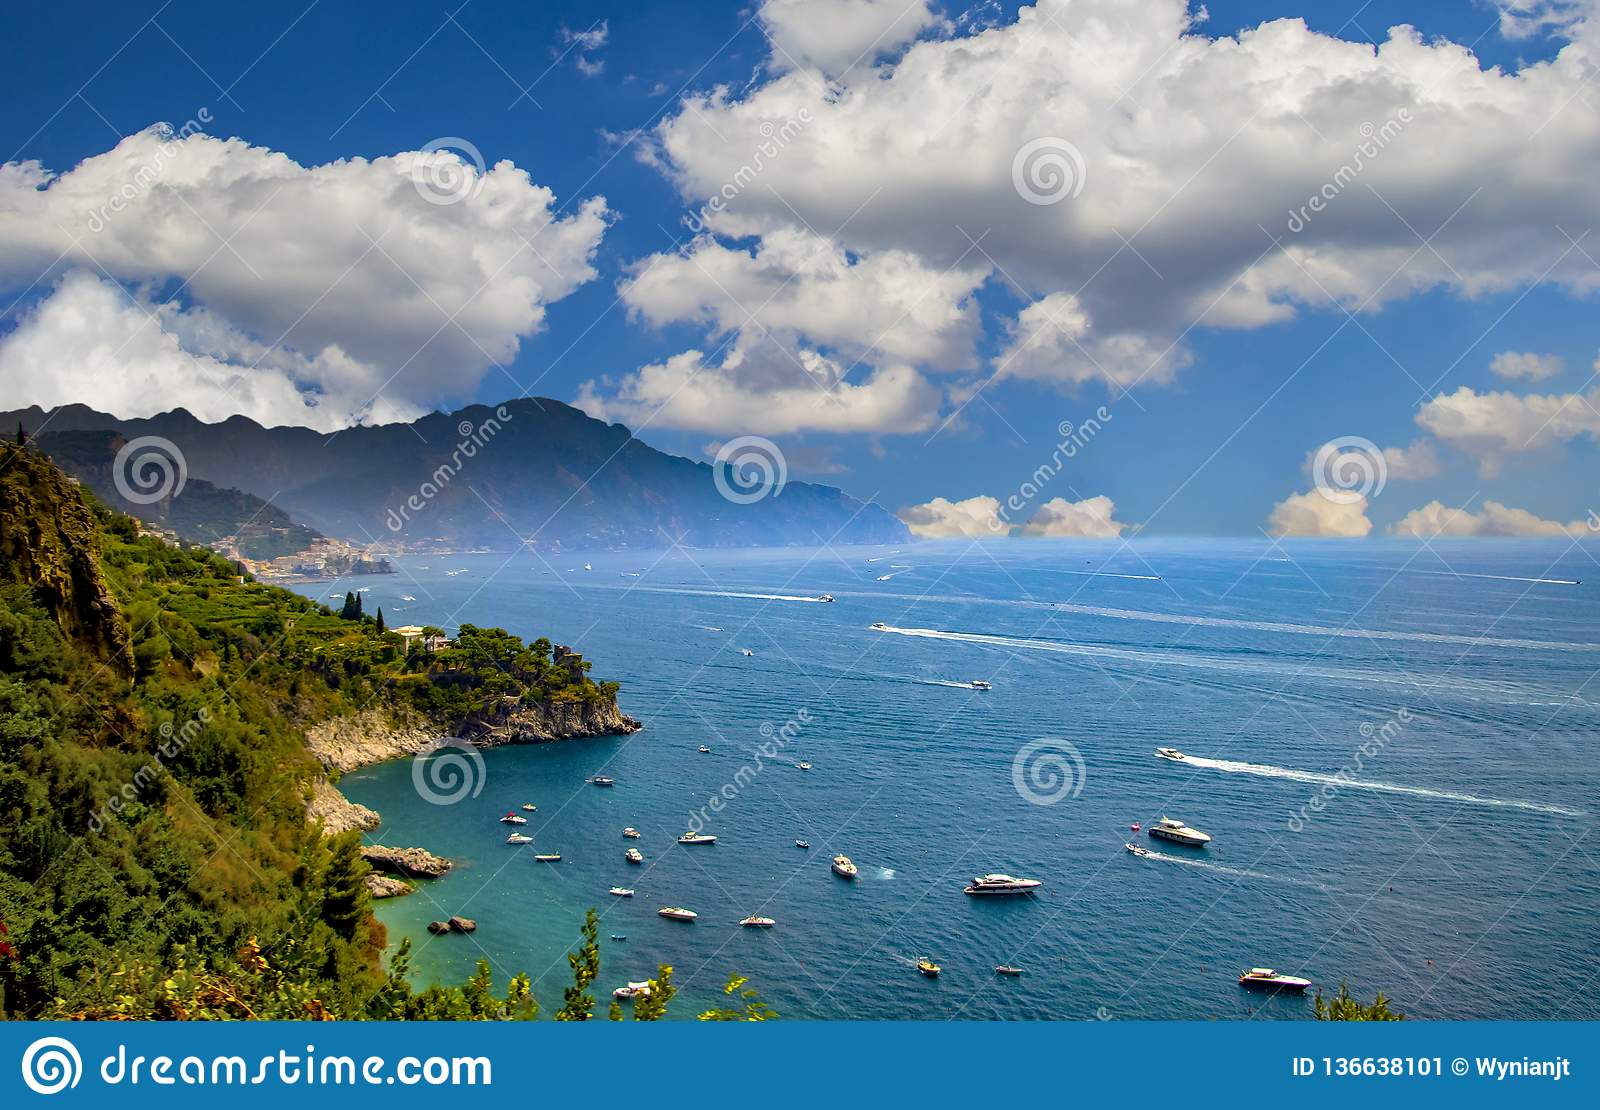 The view of Amalfi coast. This is on the south of Italy in Europe. The city stands on cliffs above the sea. There are boats on the